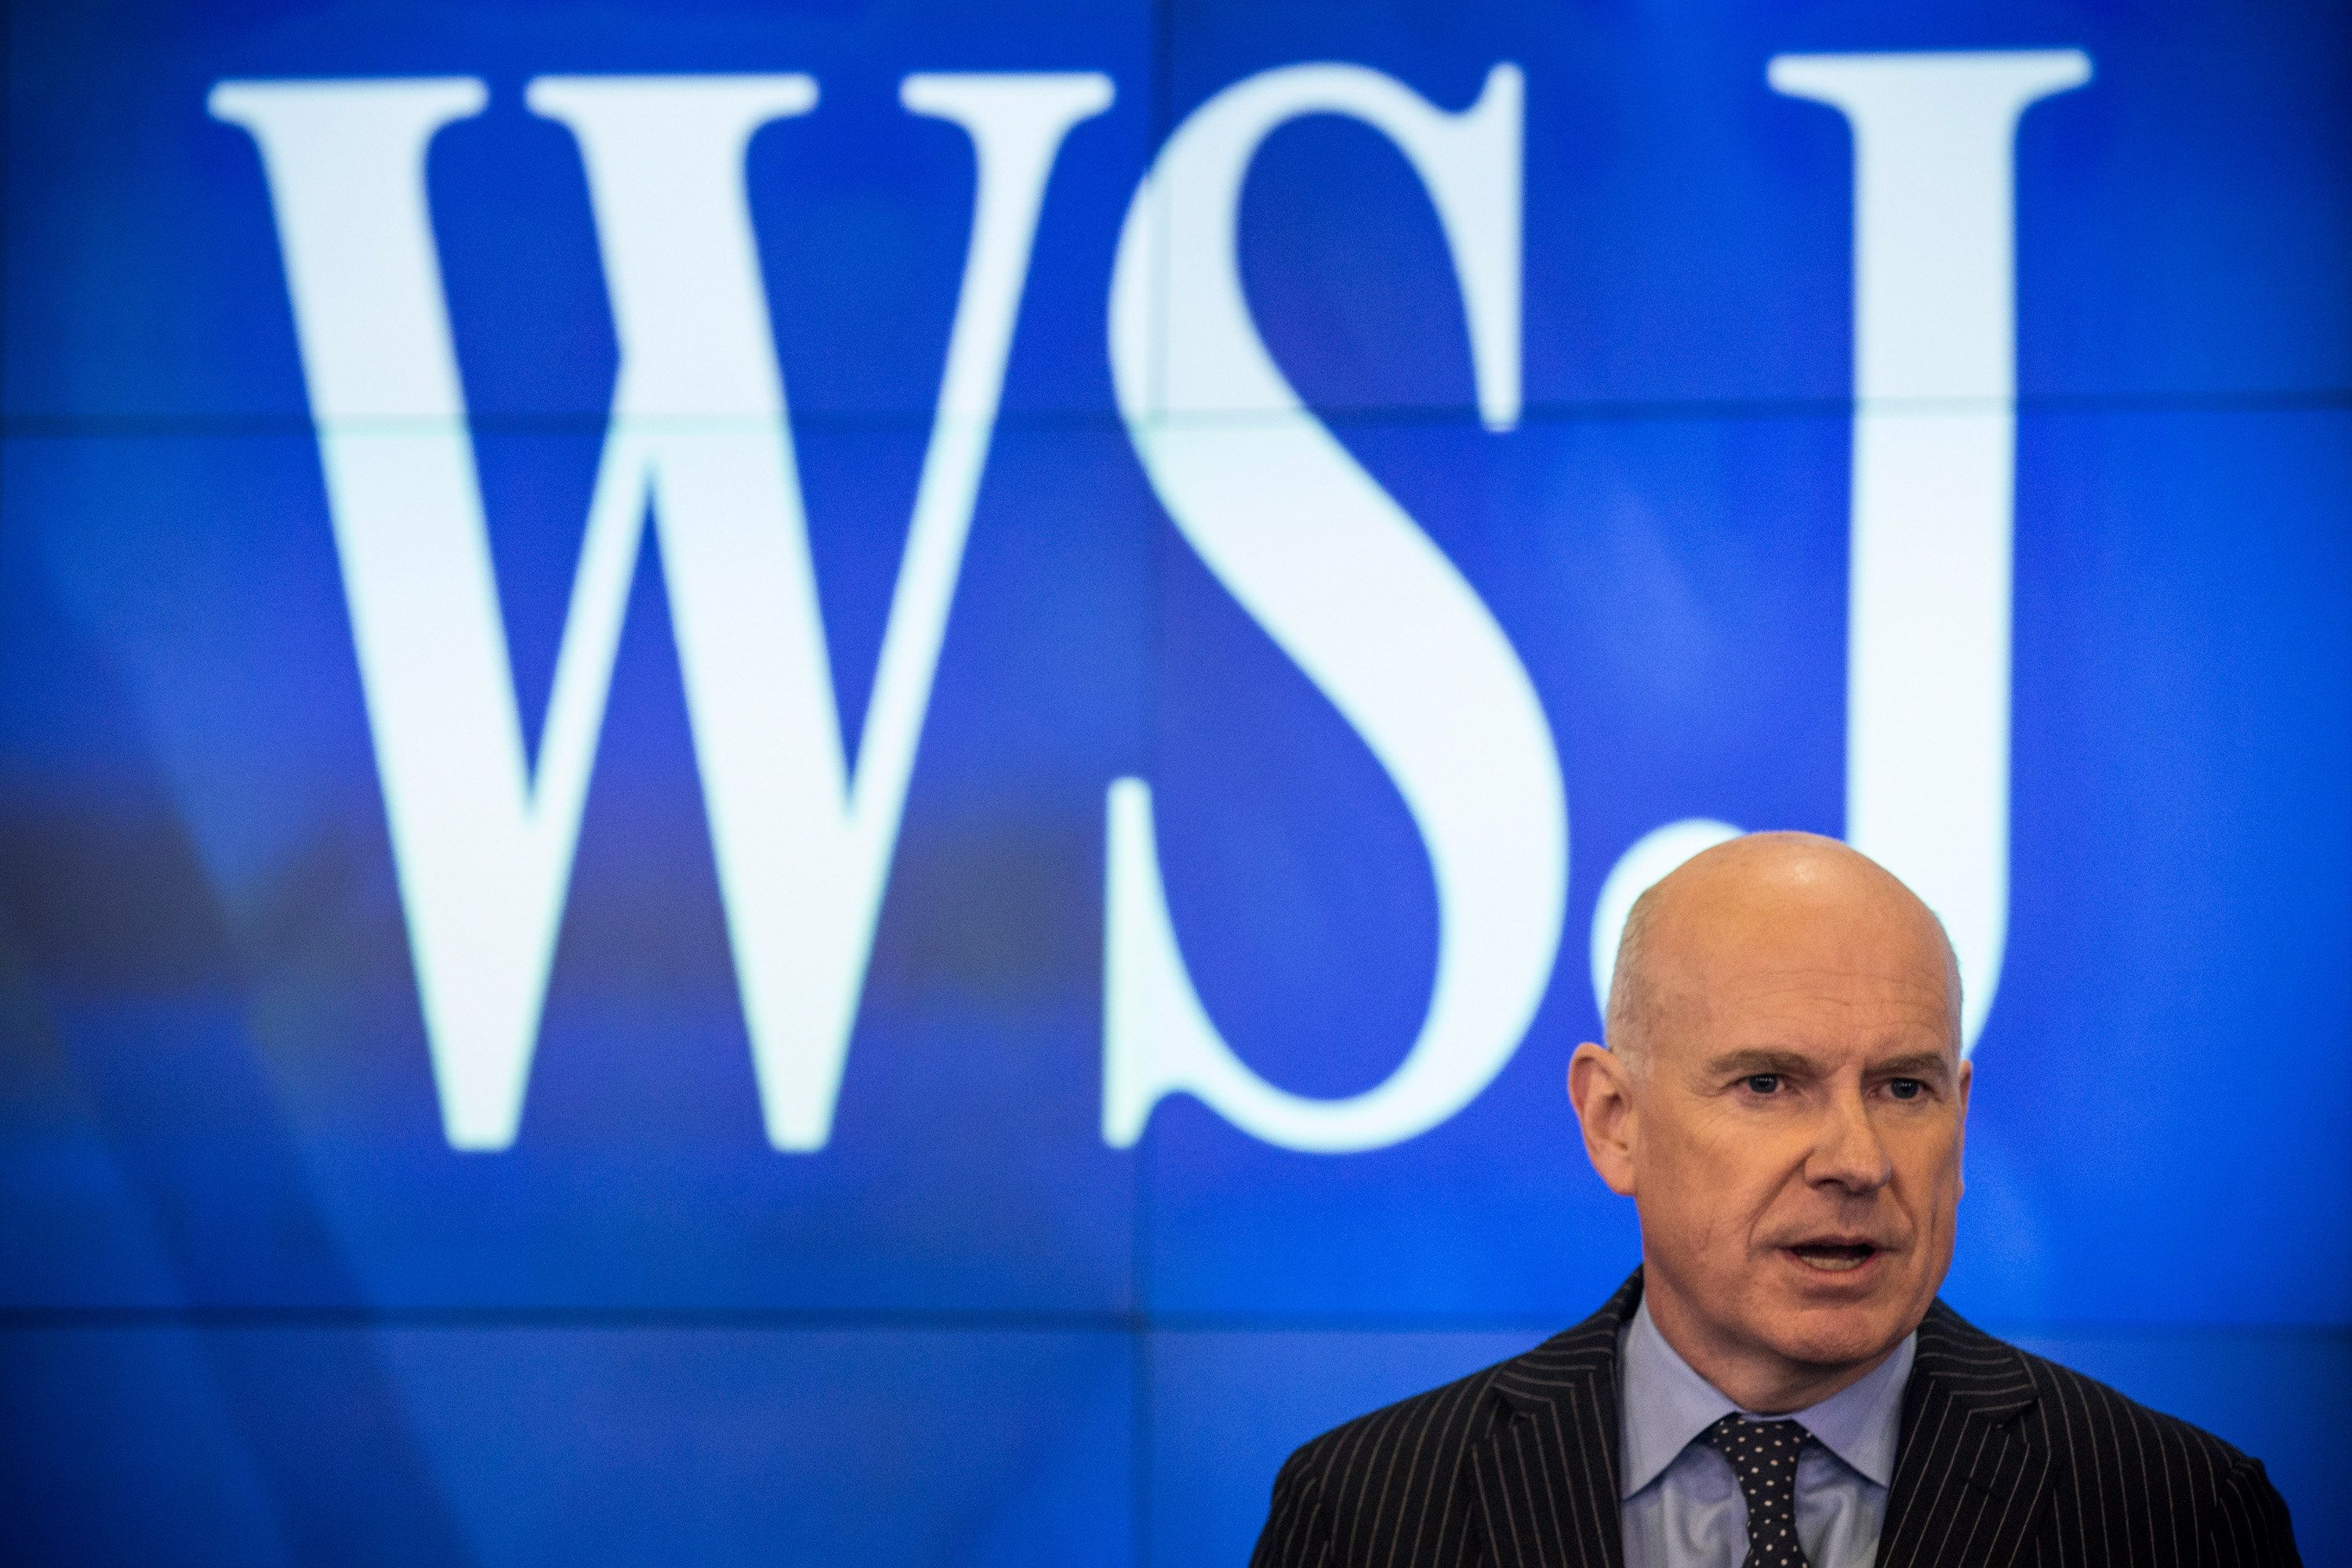 Gerard Baker, editor-in-chief of The Wall Street Journal, reportedly admonished Journal staffers over an article on President